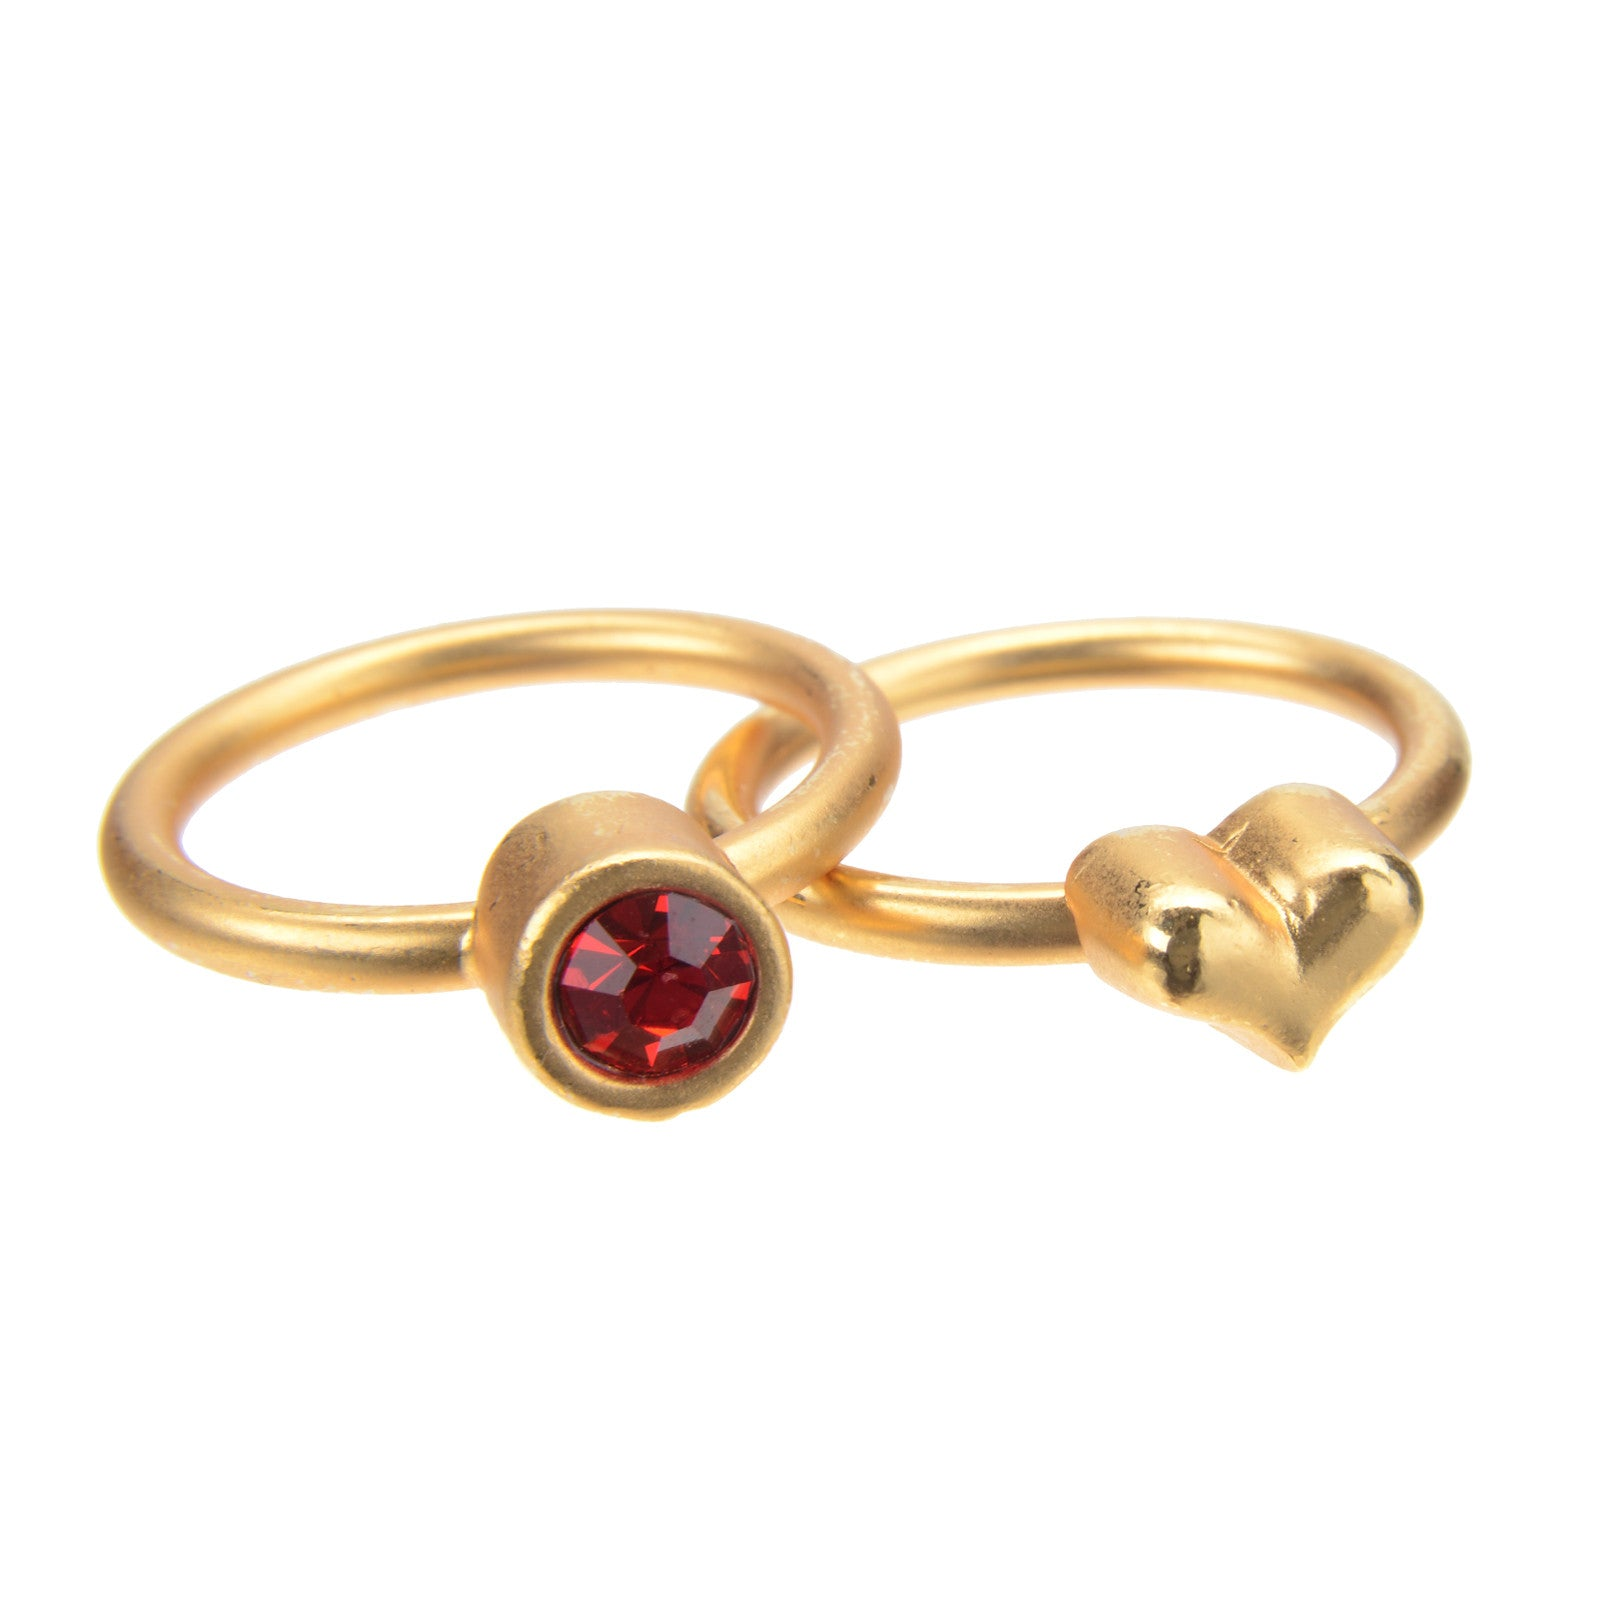 July Ruby Birthstone Ring Set - Whitney Howard Designs